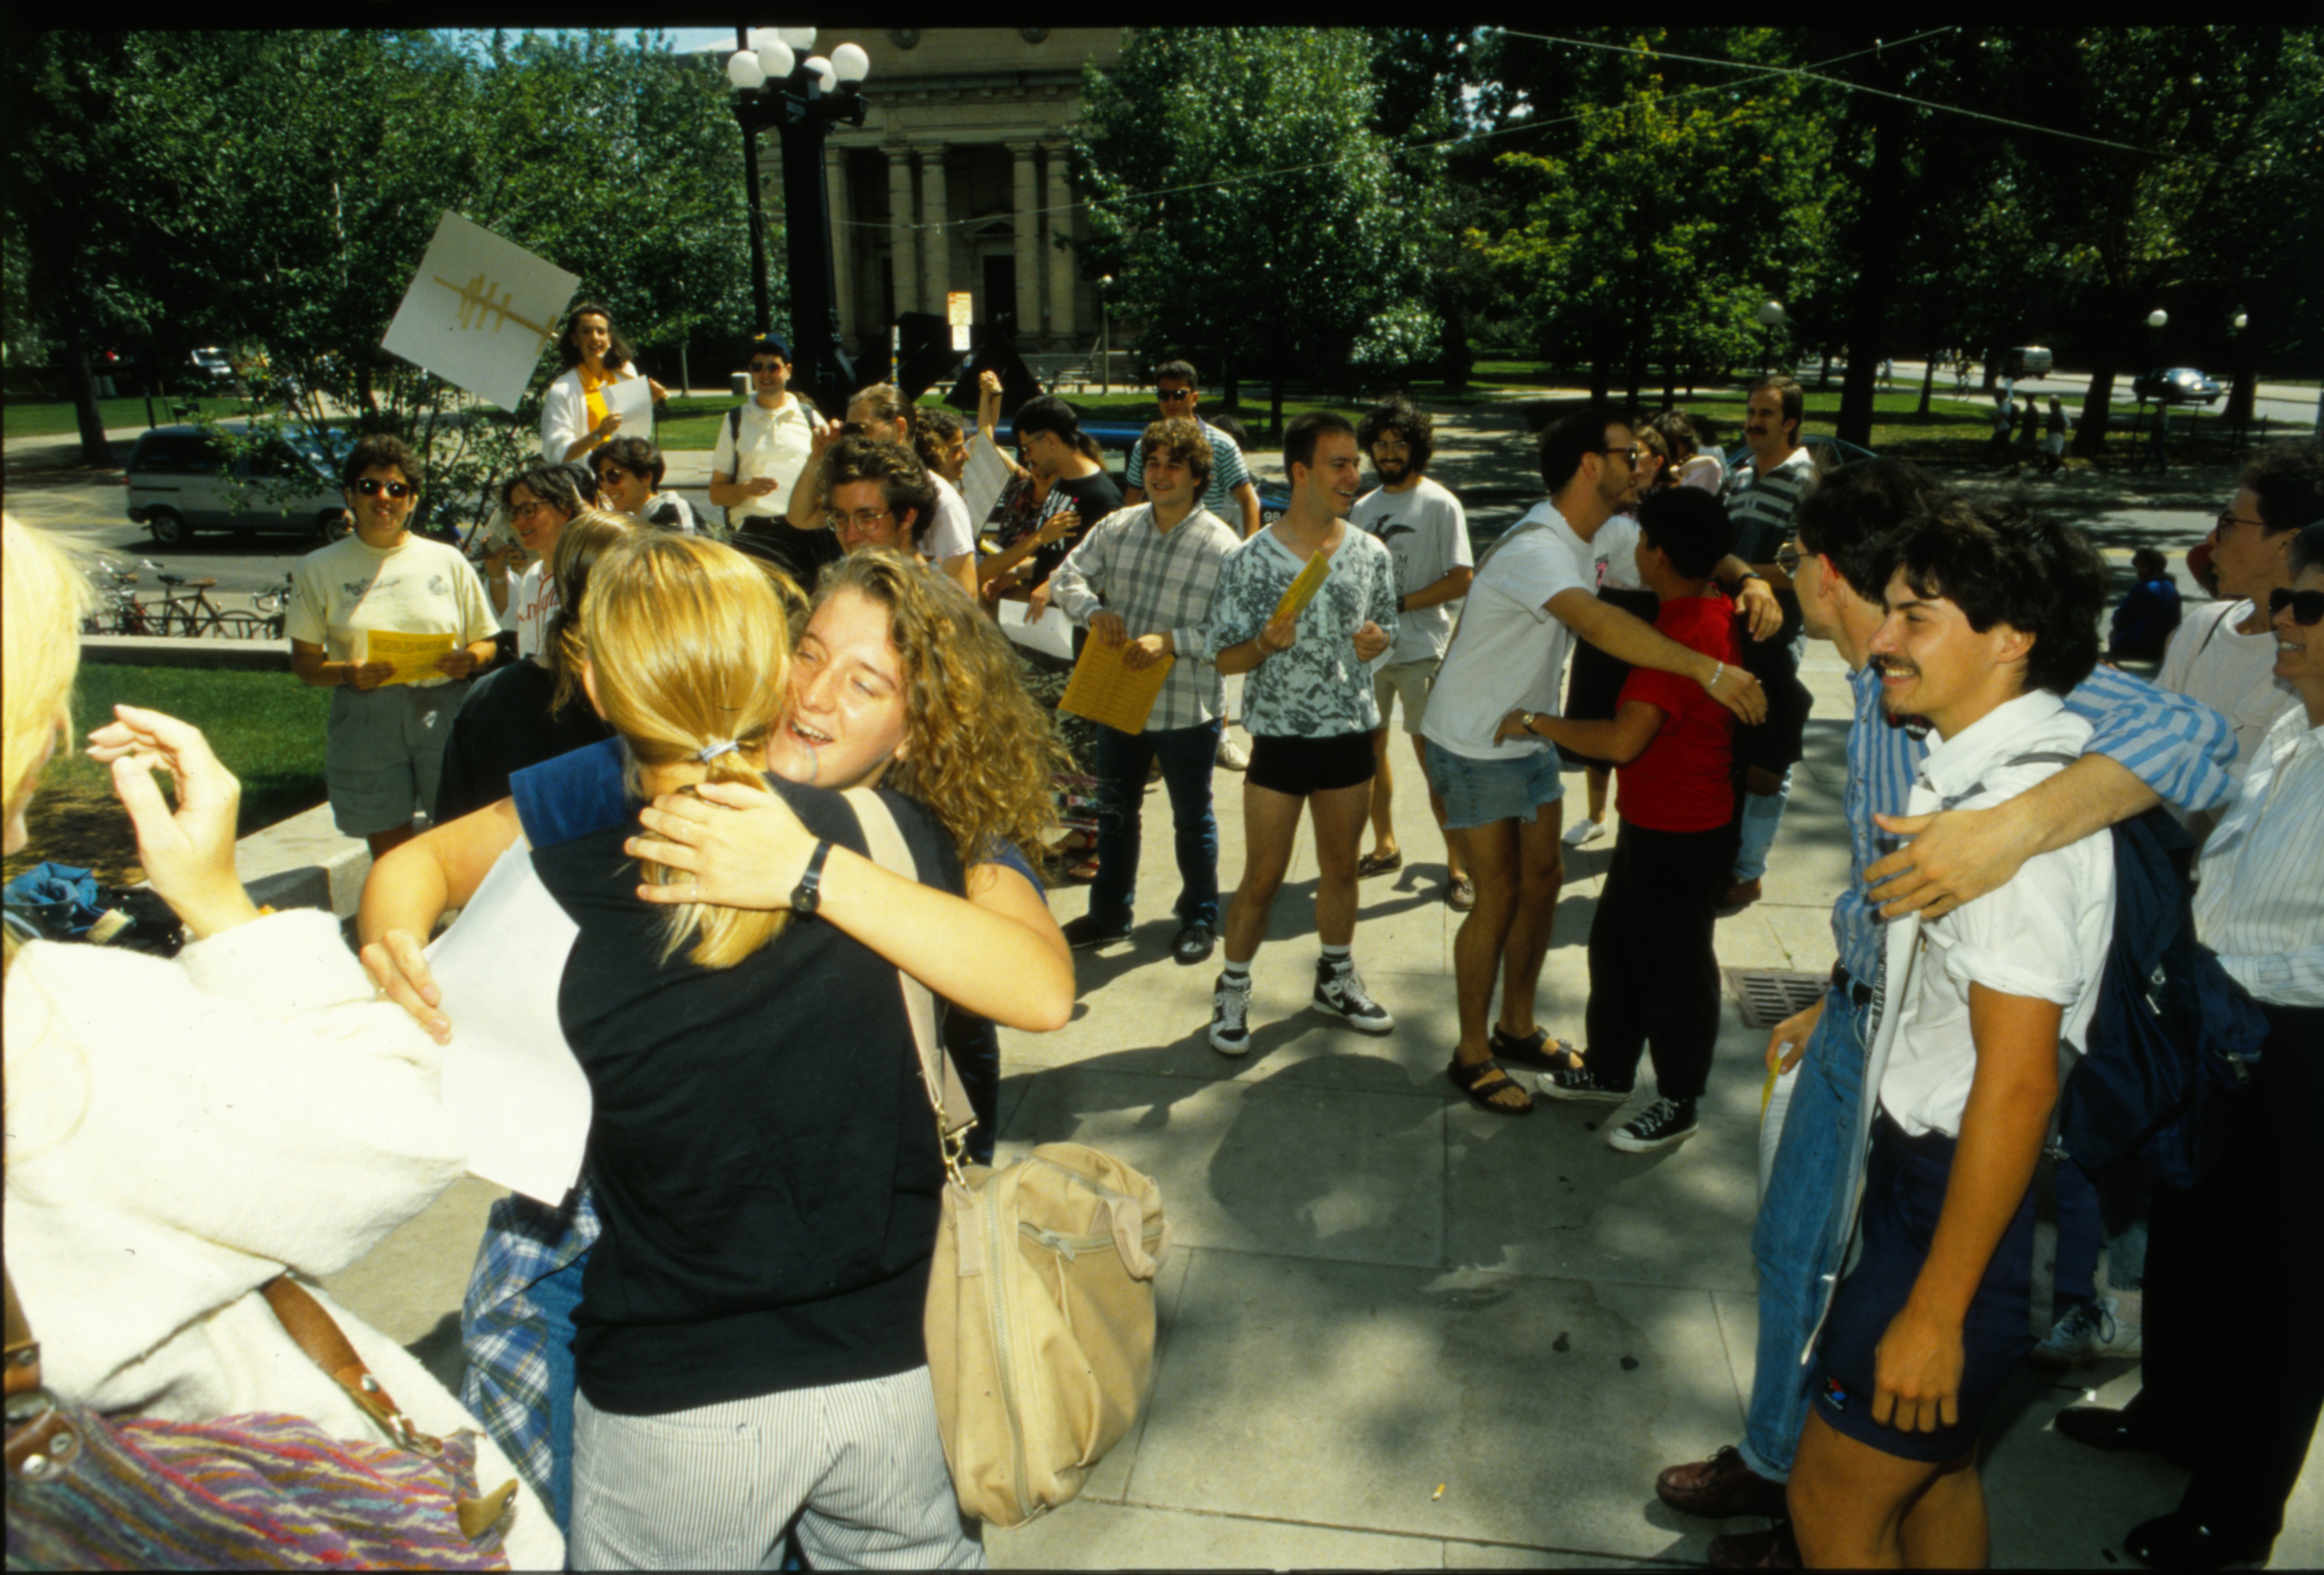 Demonstration sponsored by Act-Up, July 31, 1990 image